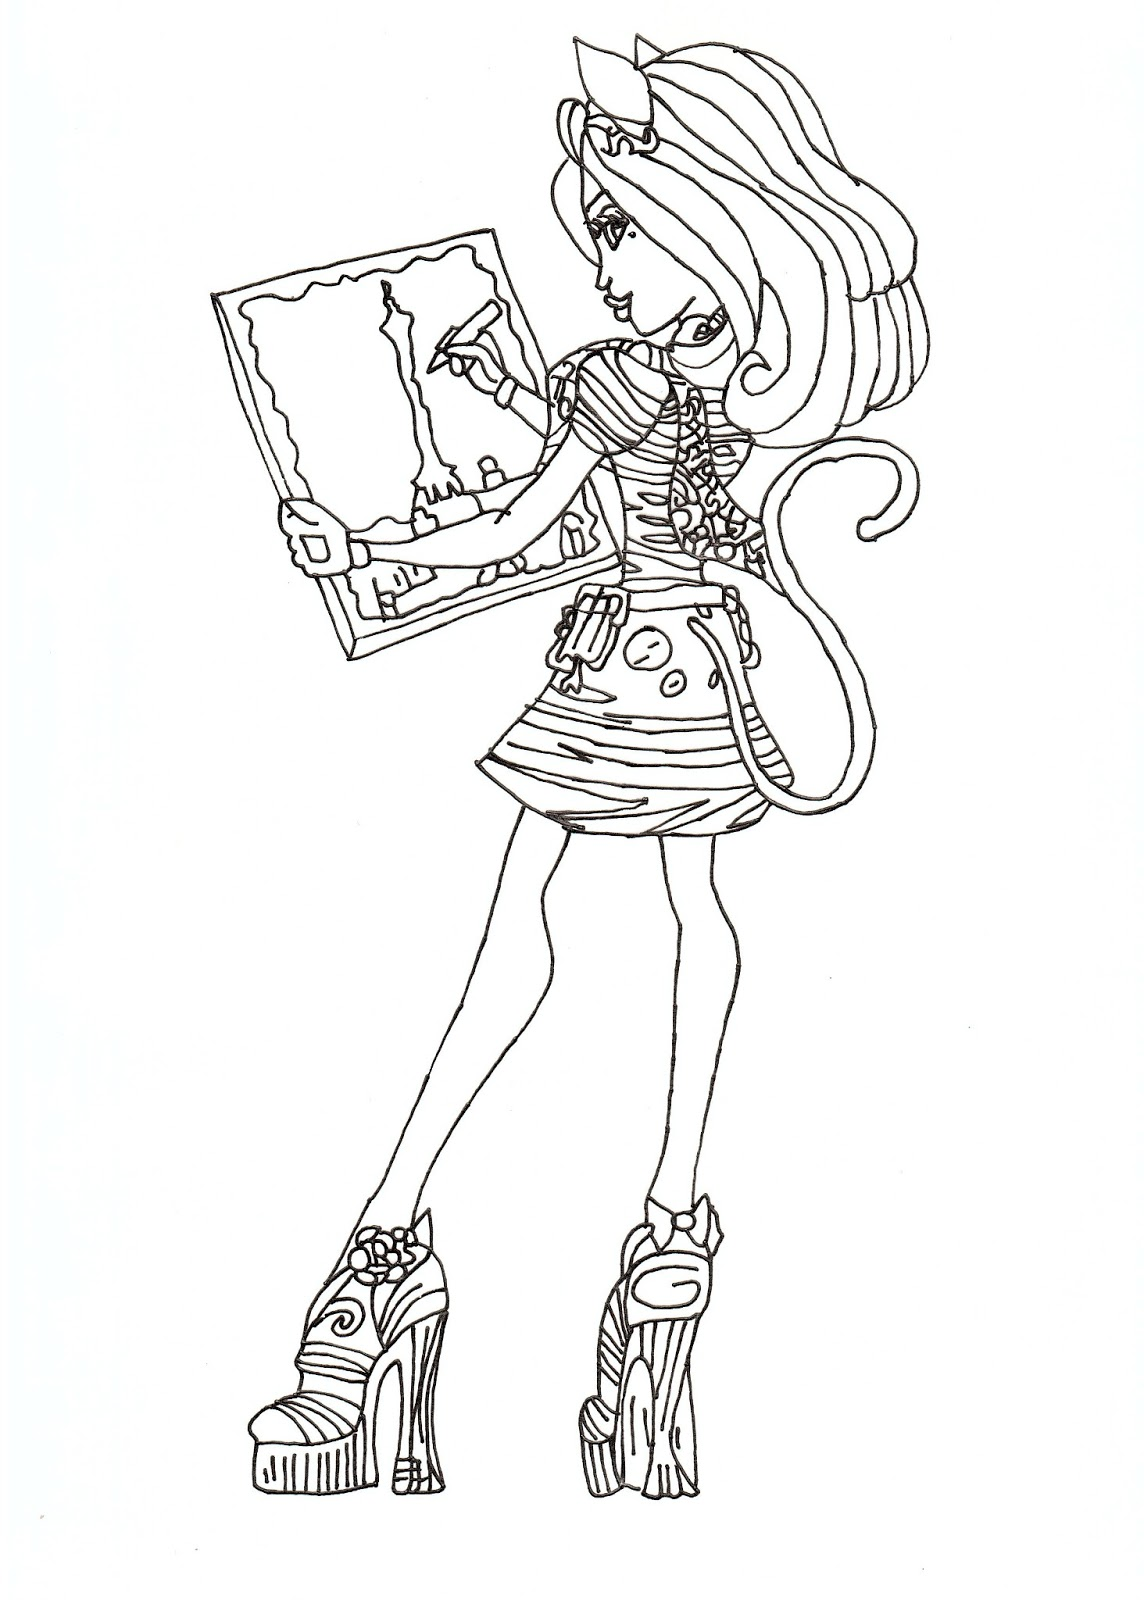 Free printable monster high coloring pages catrine de mew for Free monster high coloring pages